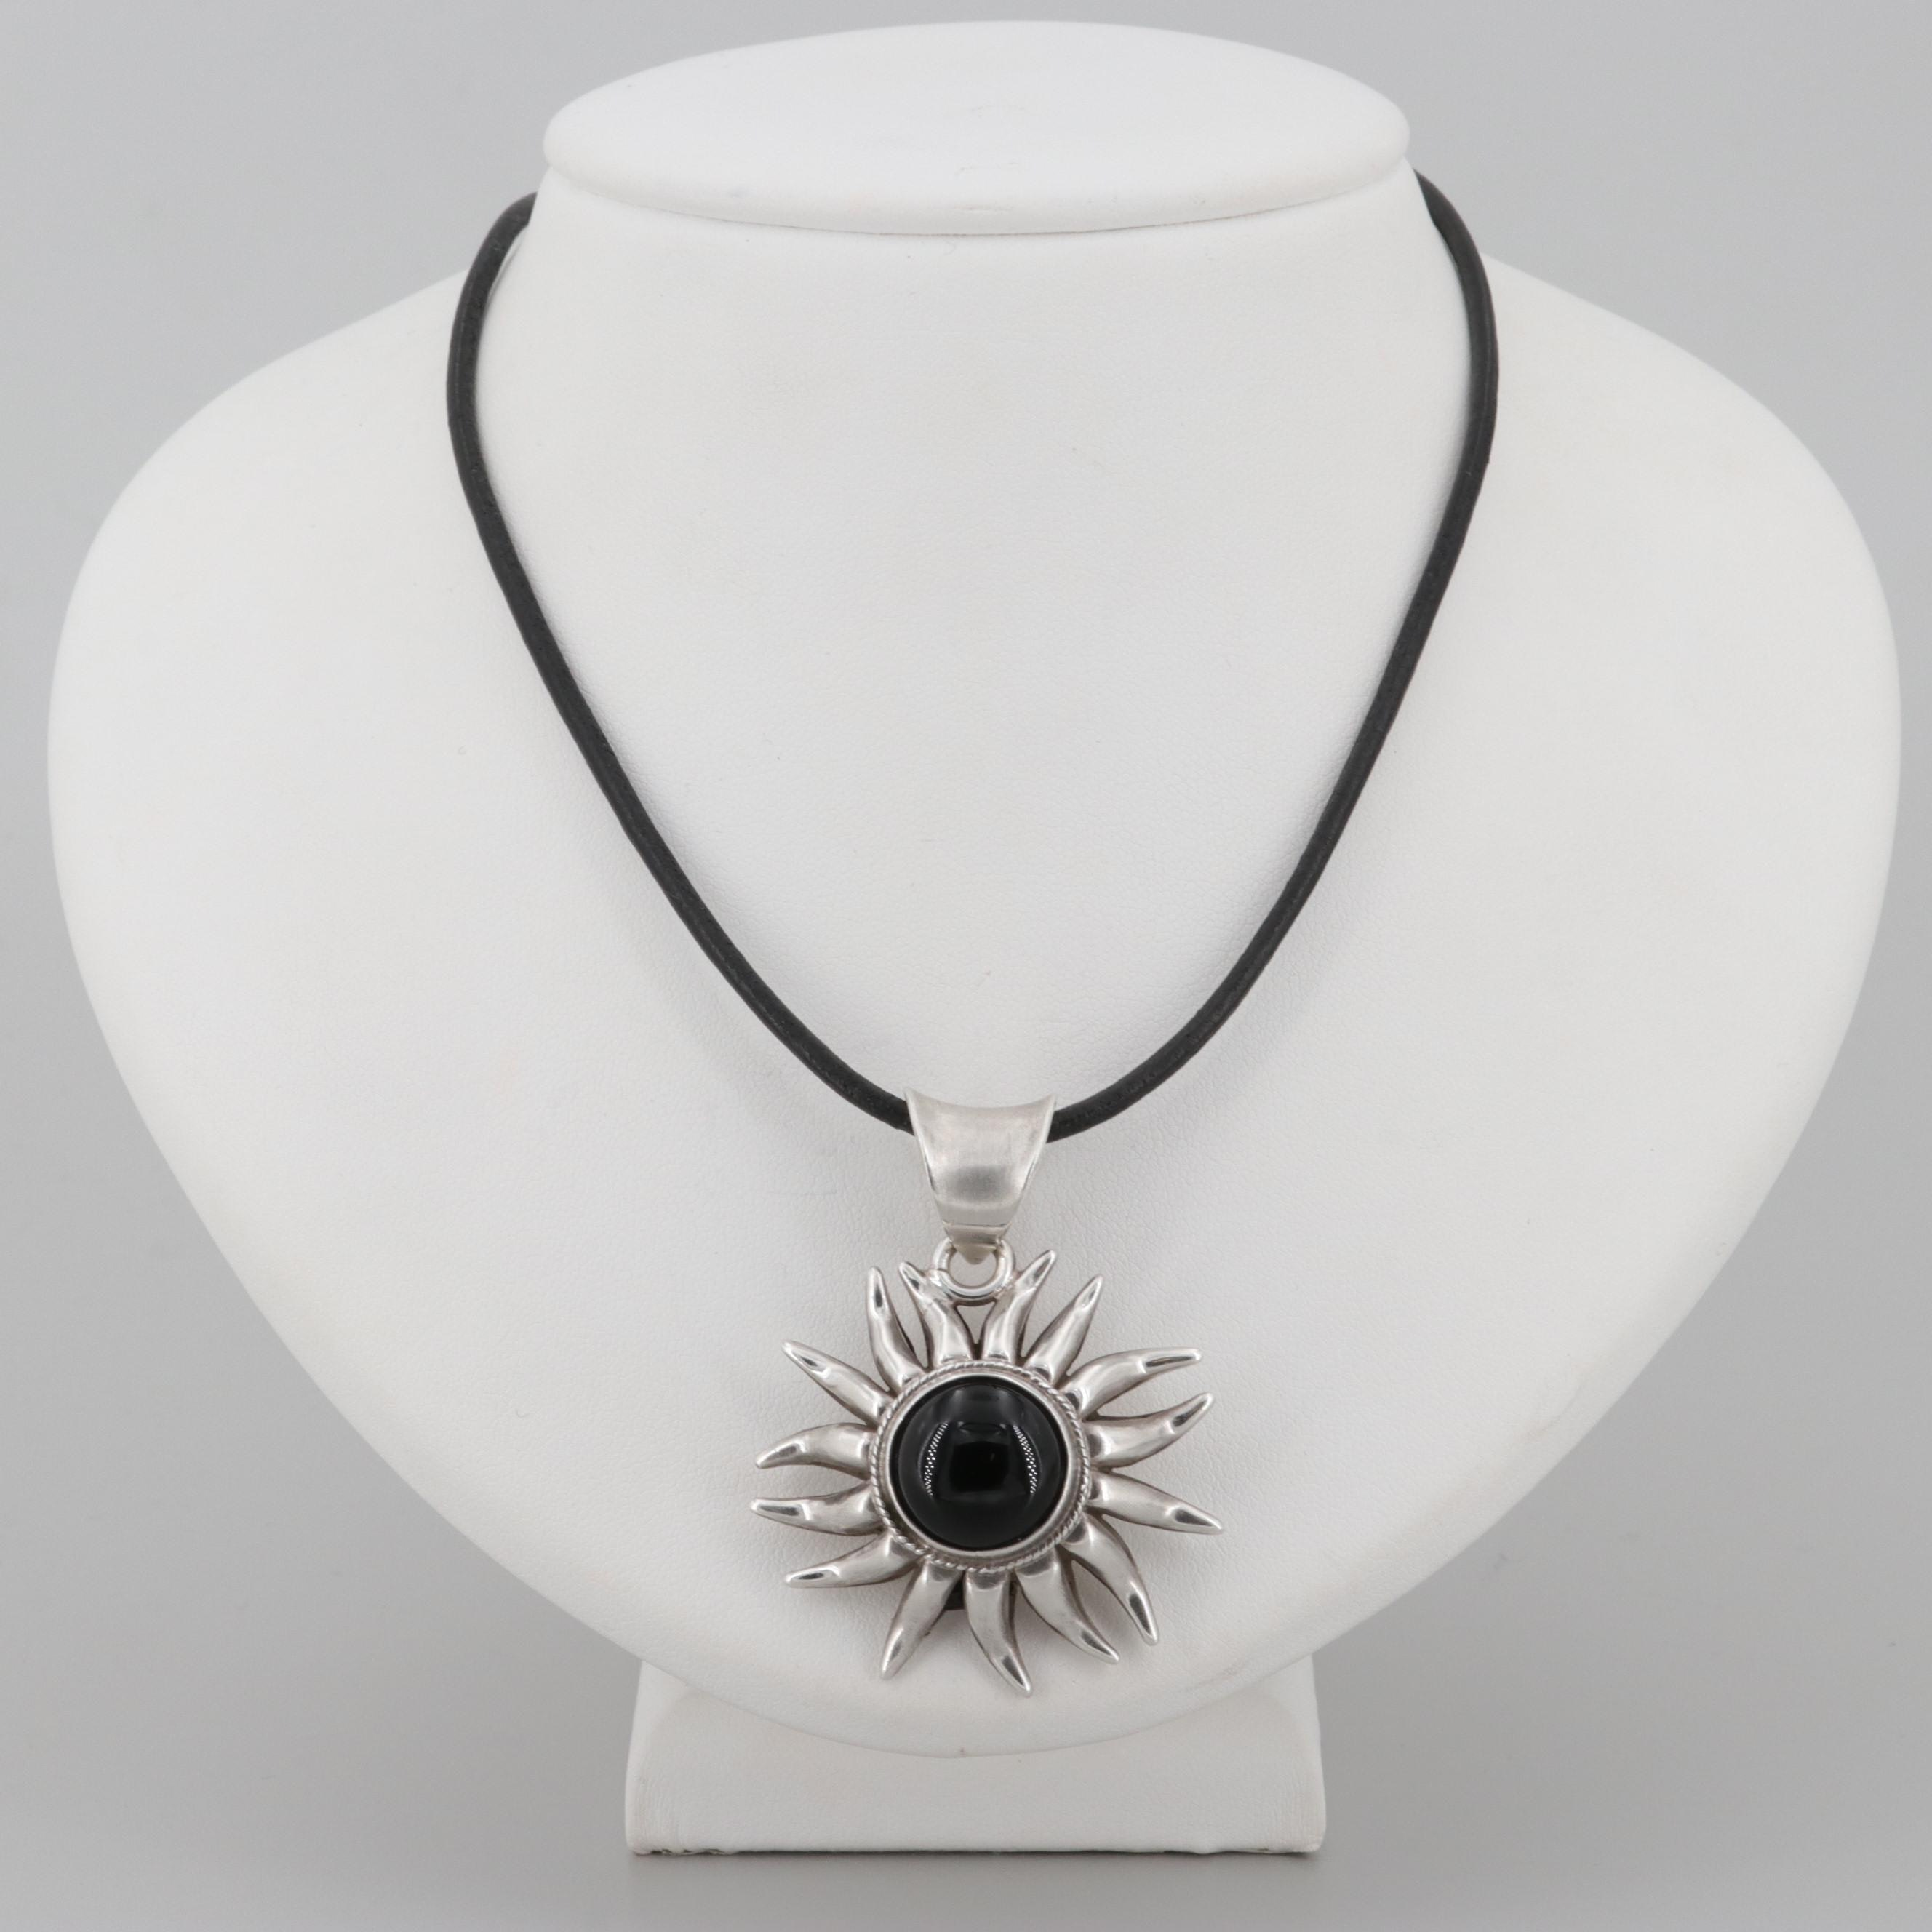 Lety G Southwestern Style Sterling Silver Black Onyx Necklace